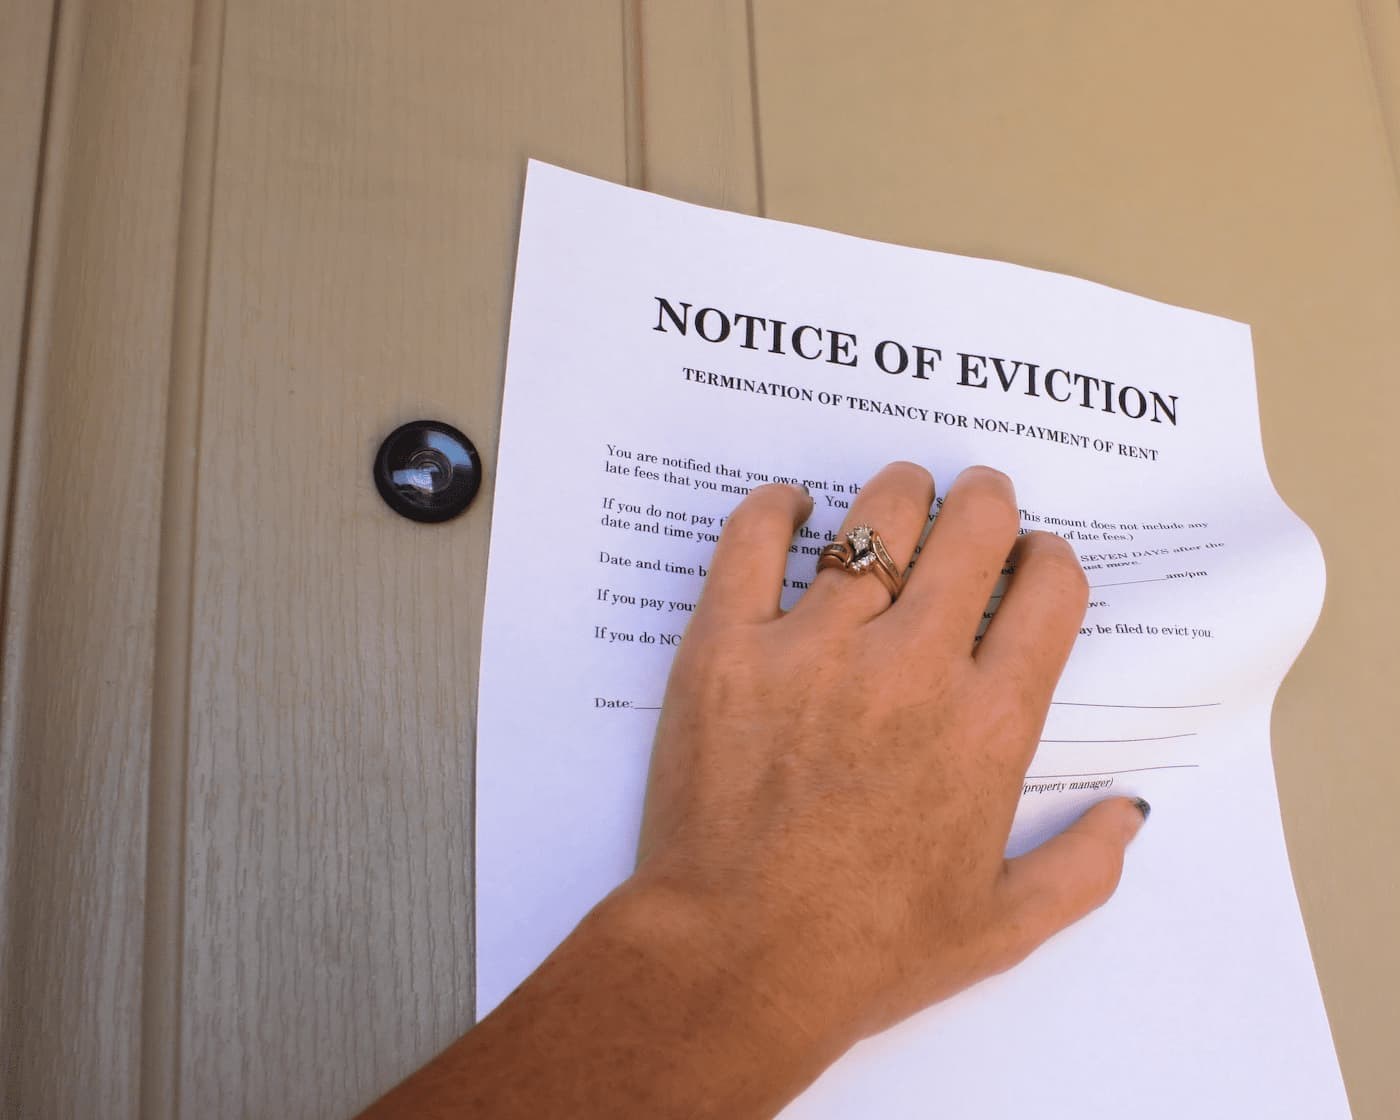 Notice of eviction at rental property